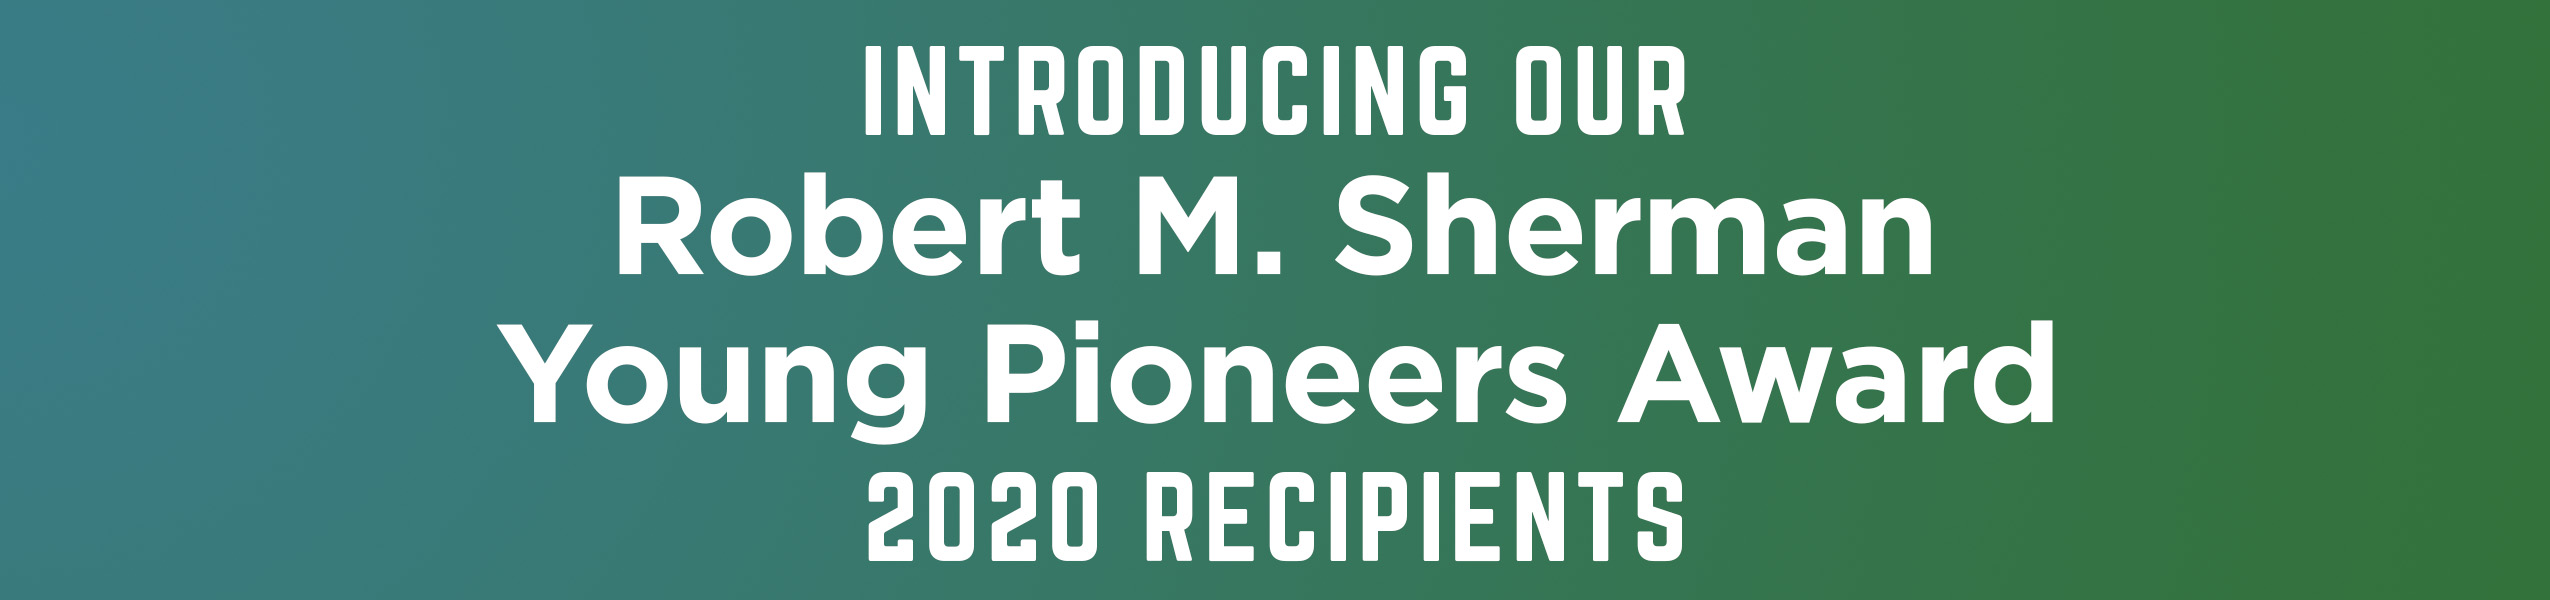 Introducing Robert M. Sherman Young Pioneers Award 2020 Recipients